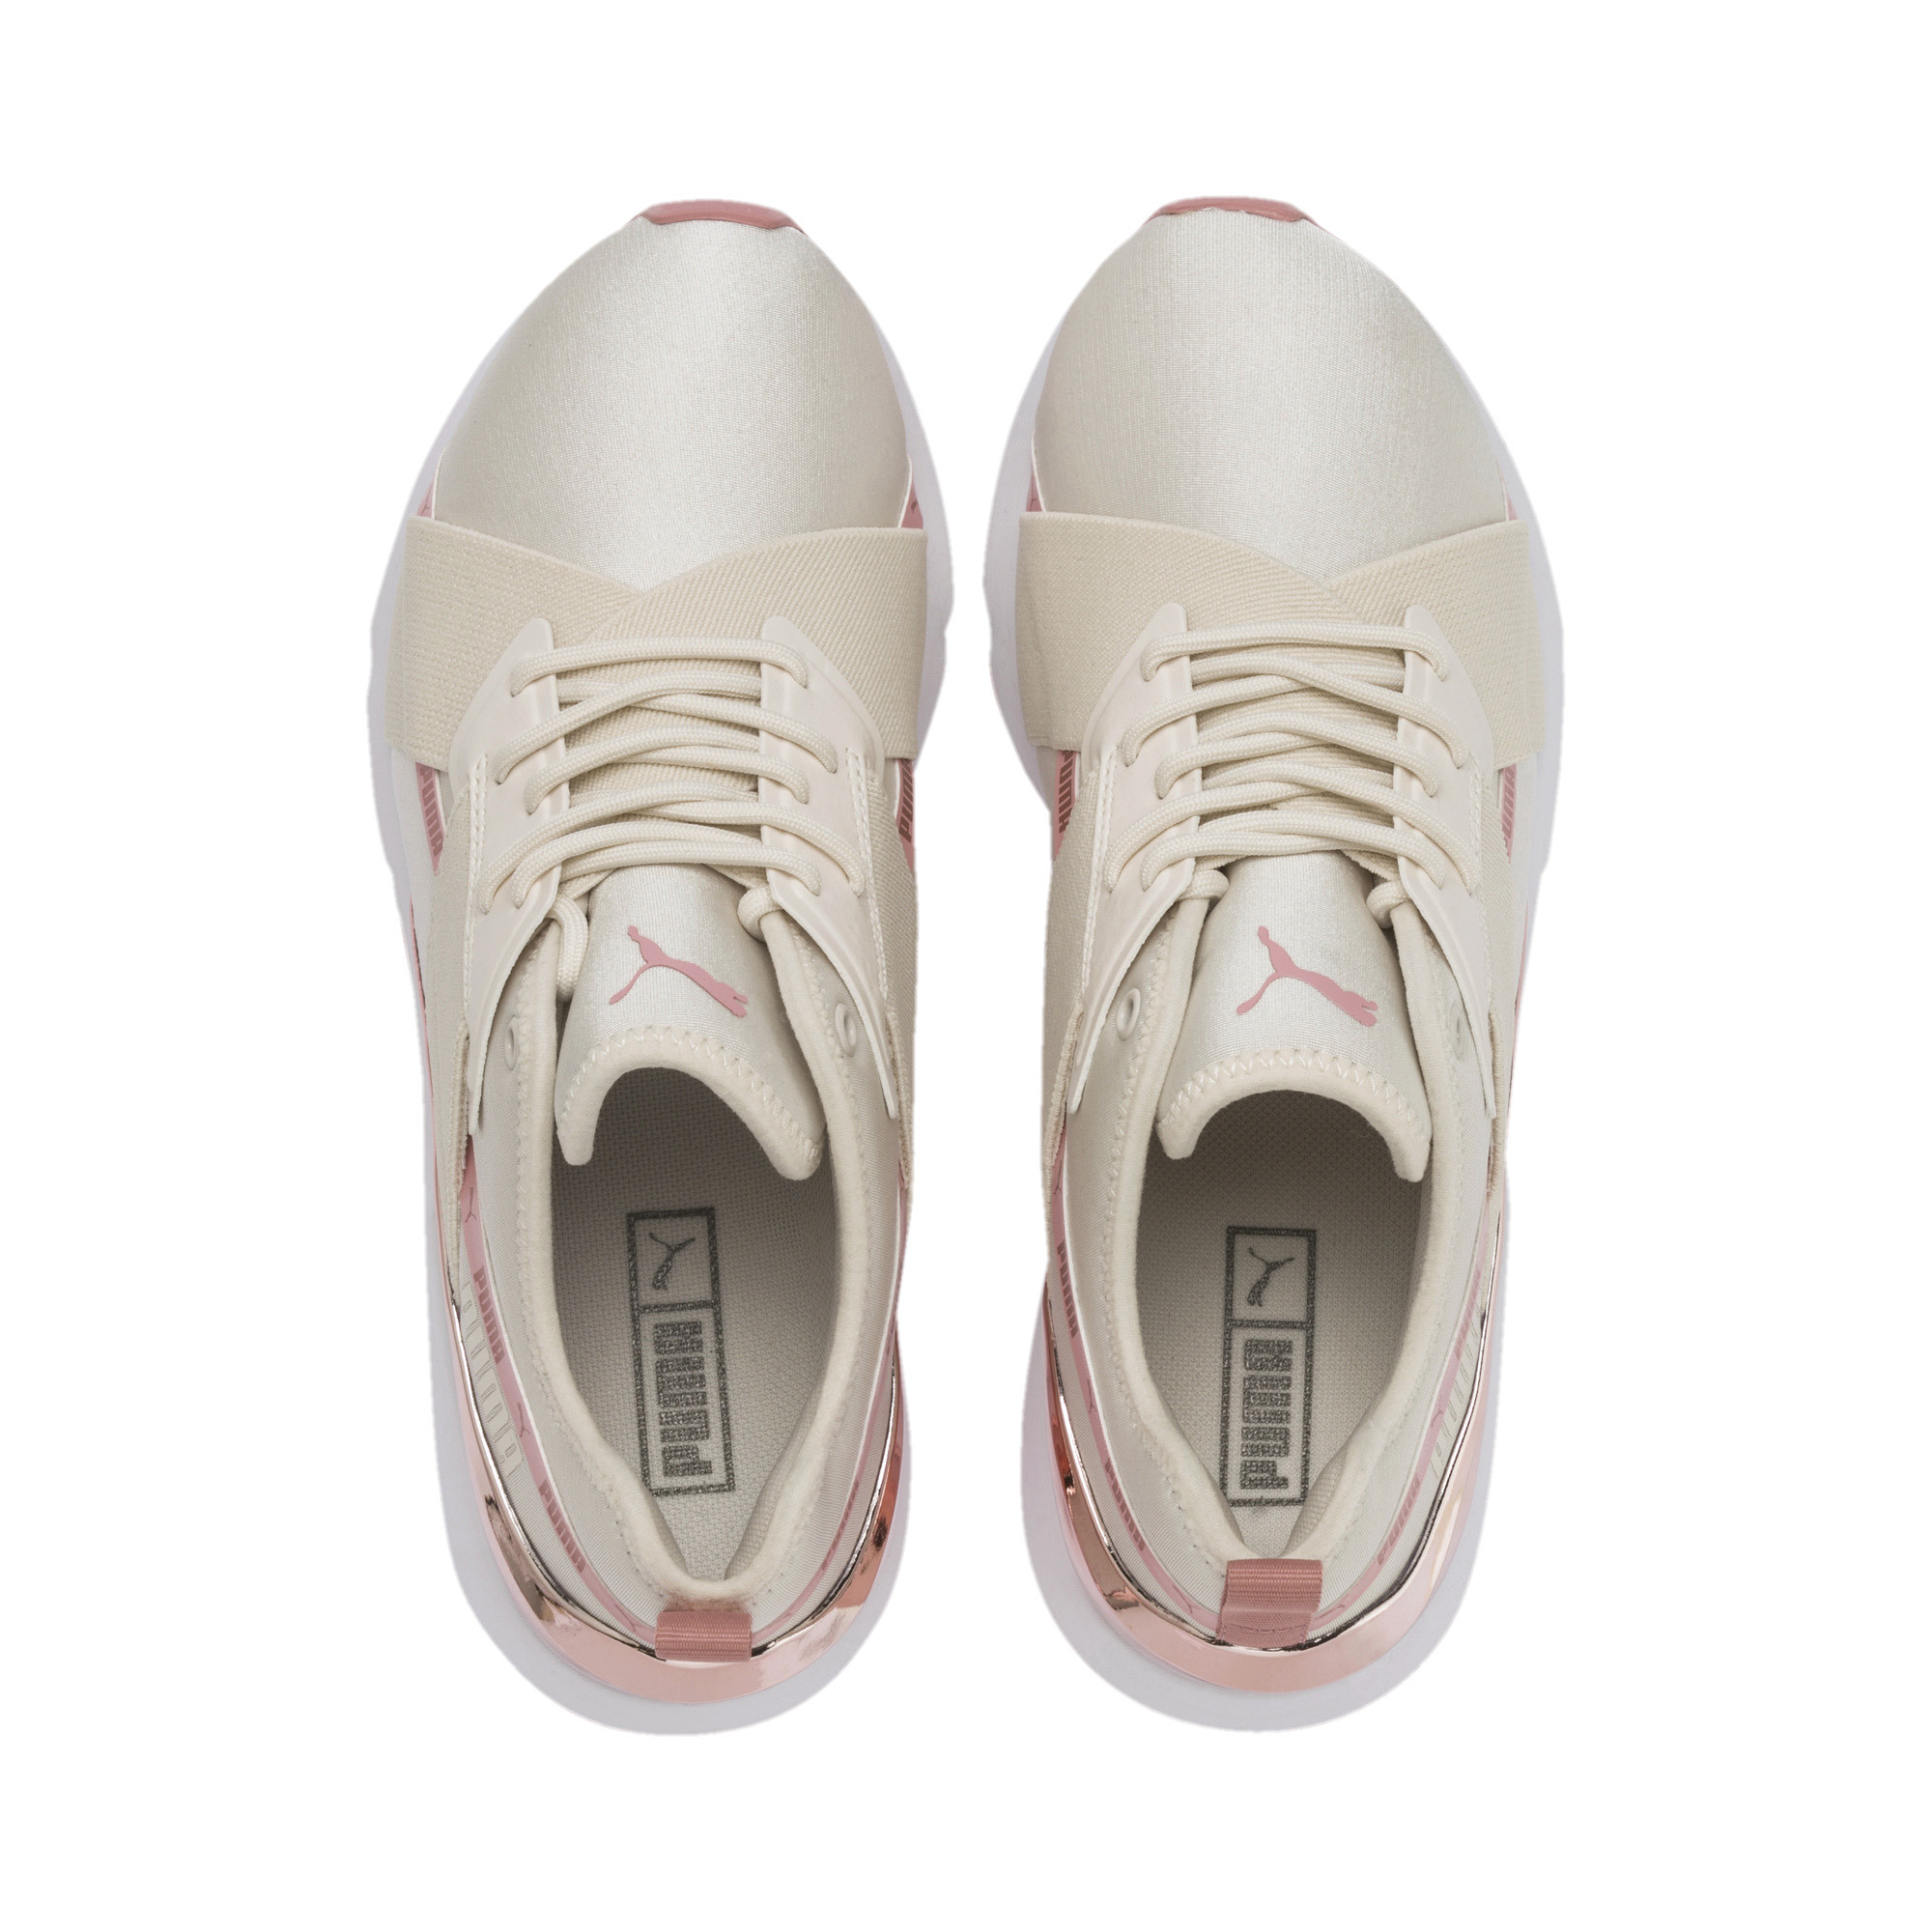 PUMA-Muse-X-2-Metallic-Women-039-s-Sneakers-Women-Shoe-Evolution thumbnail 15